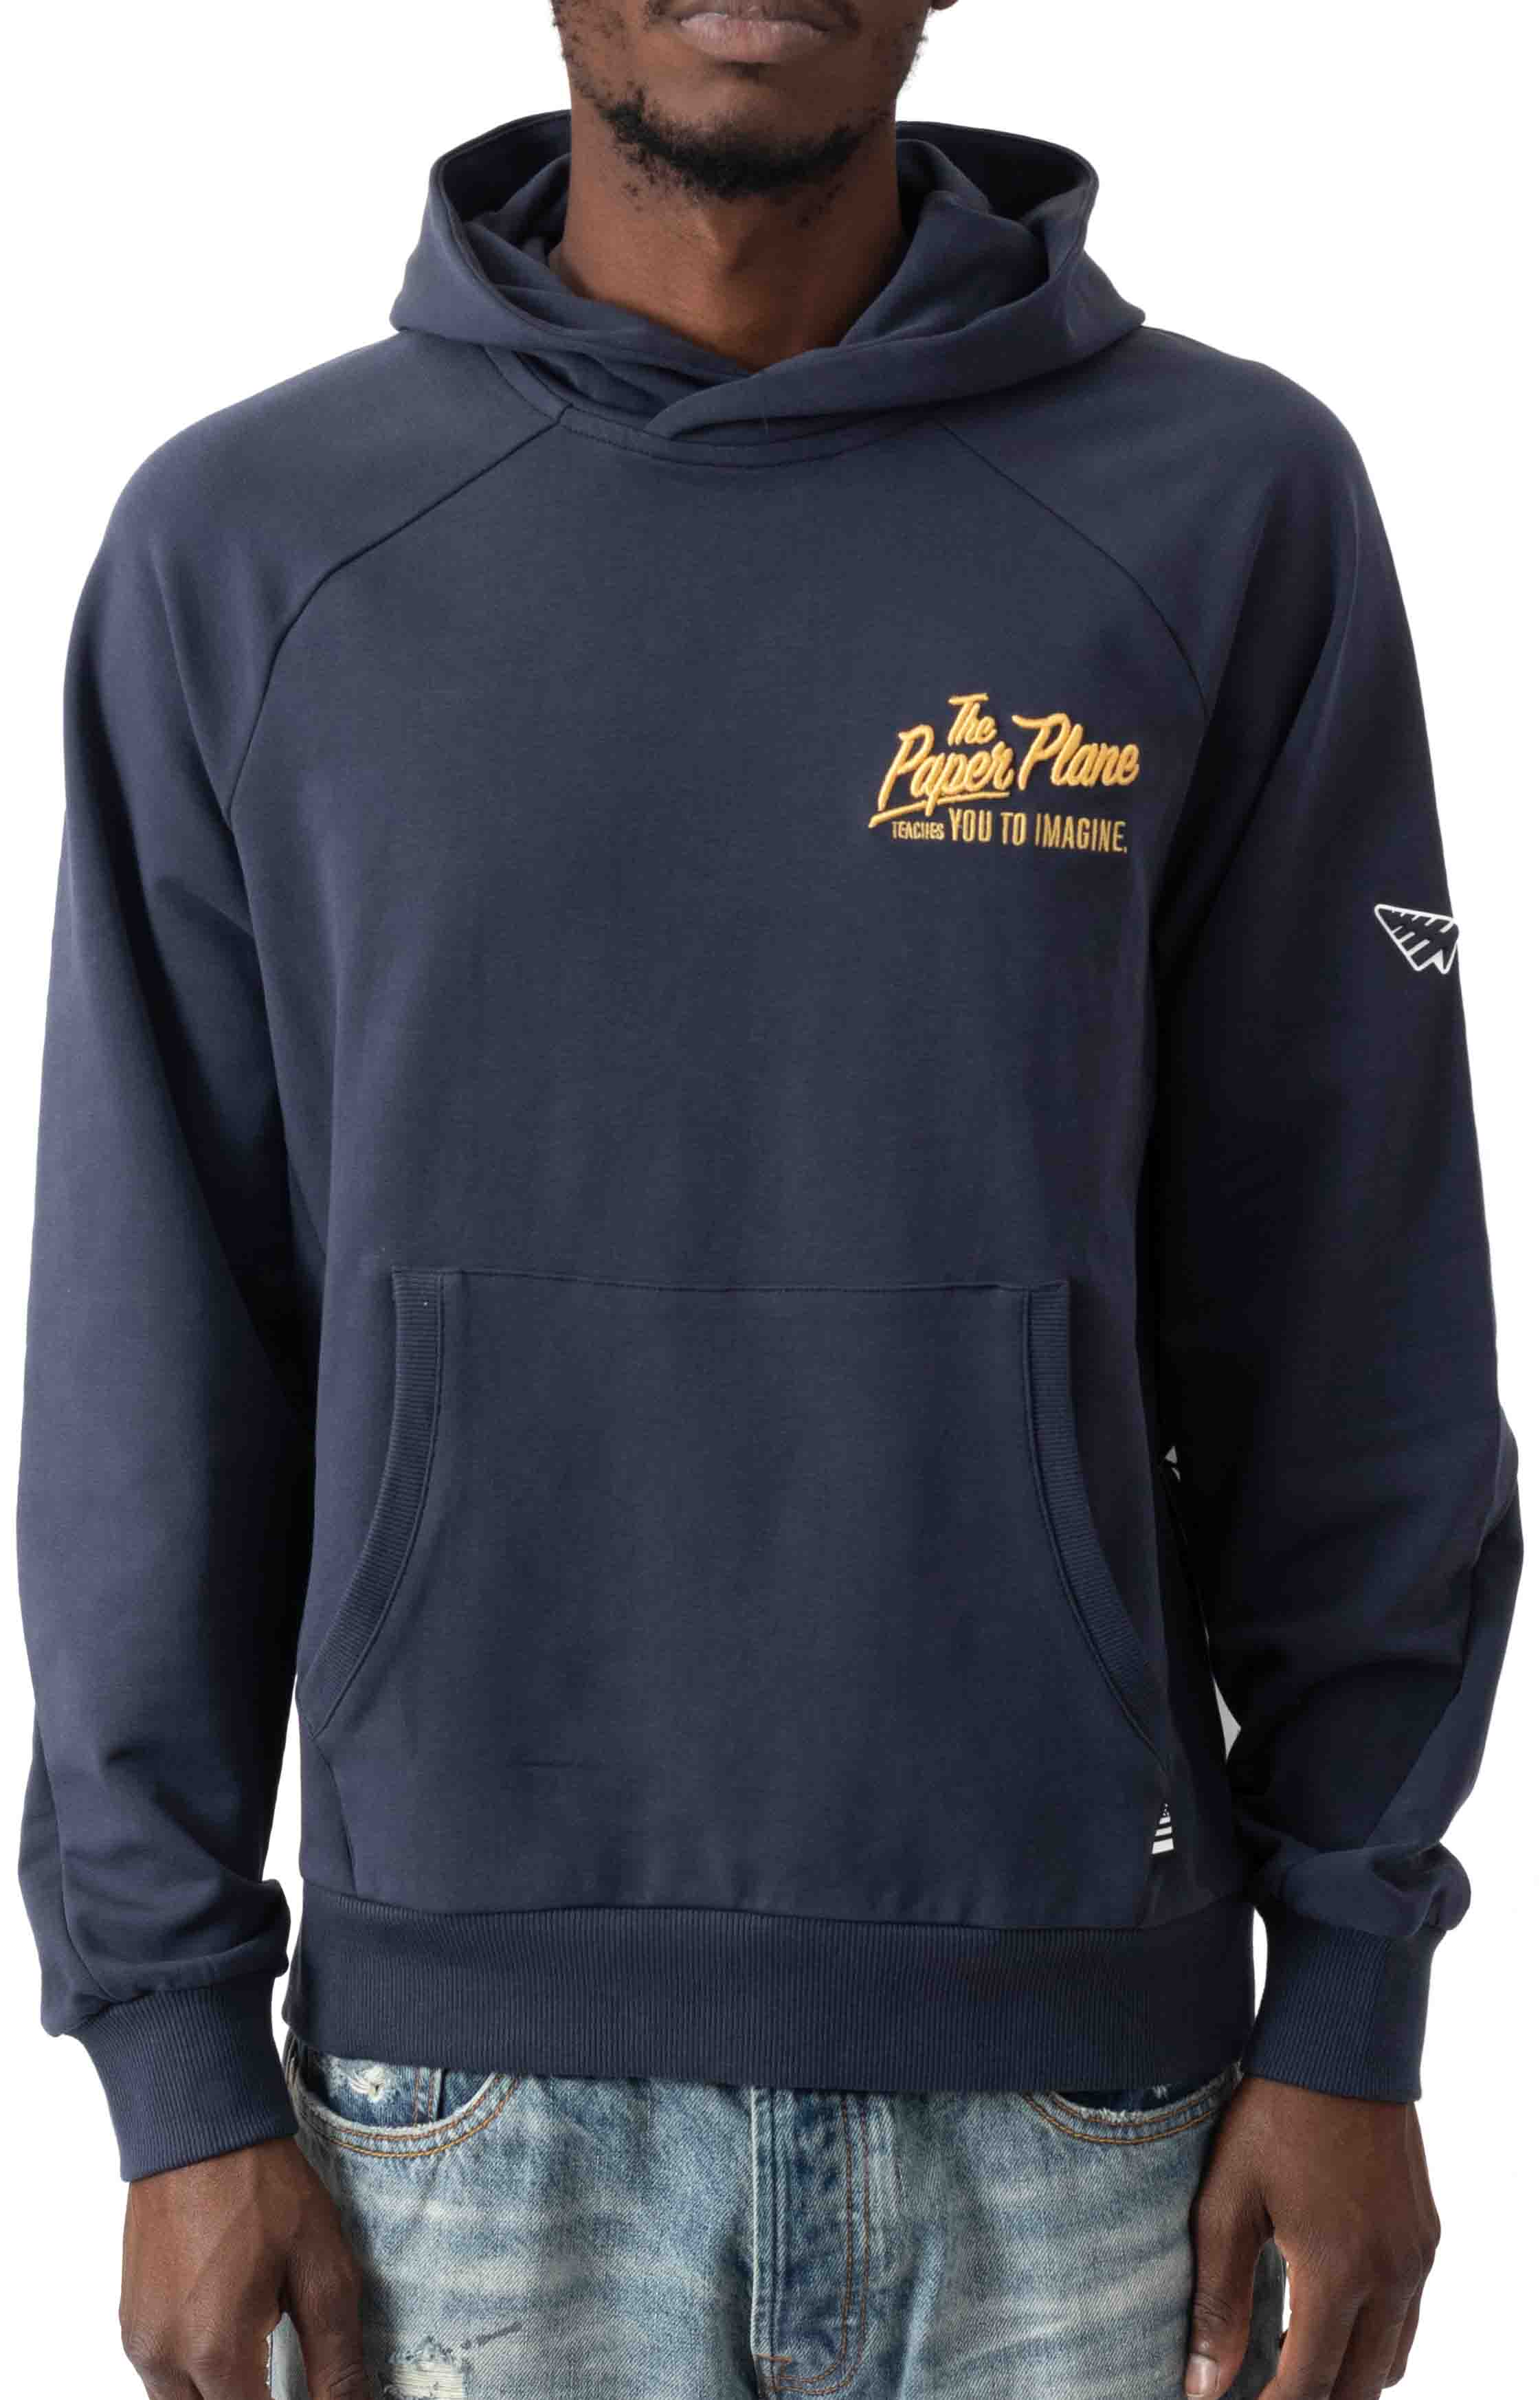 A Plane Story Pullover Hoodie - Sapphire  2